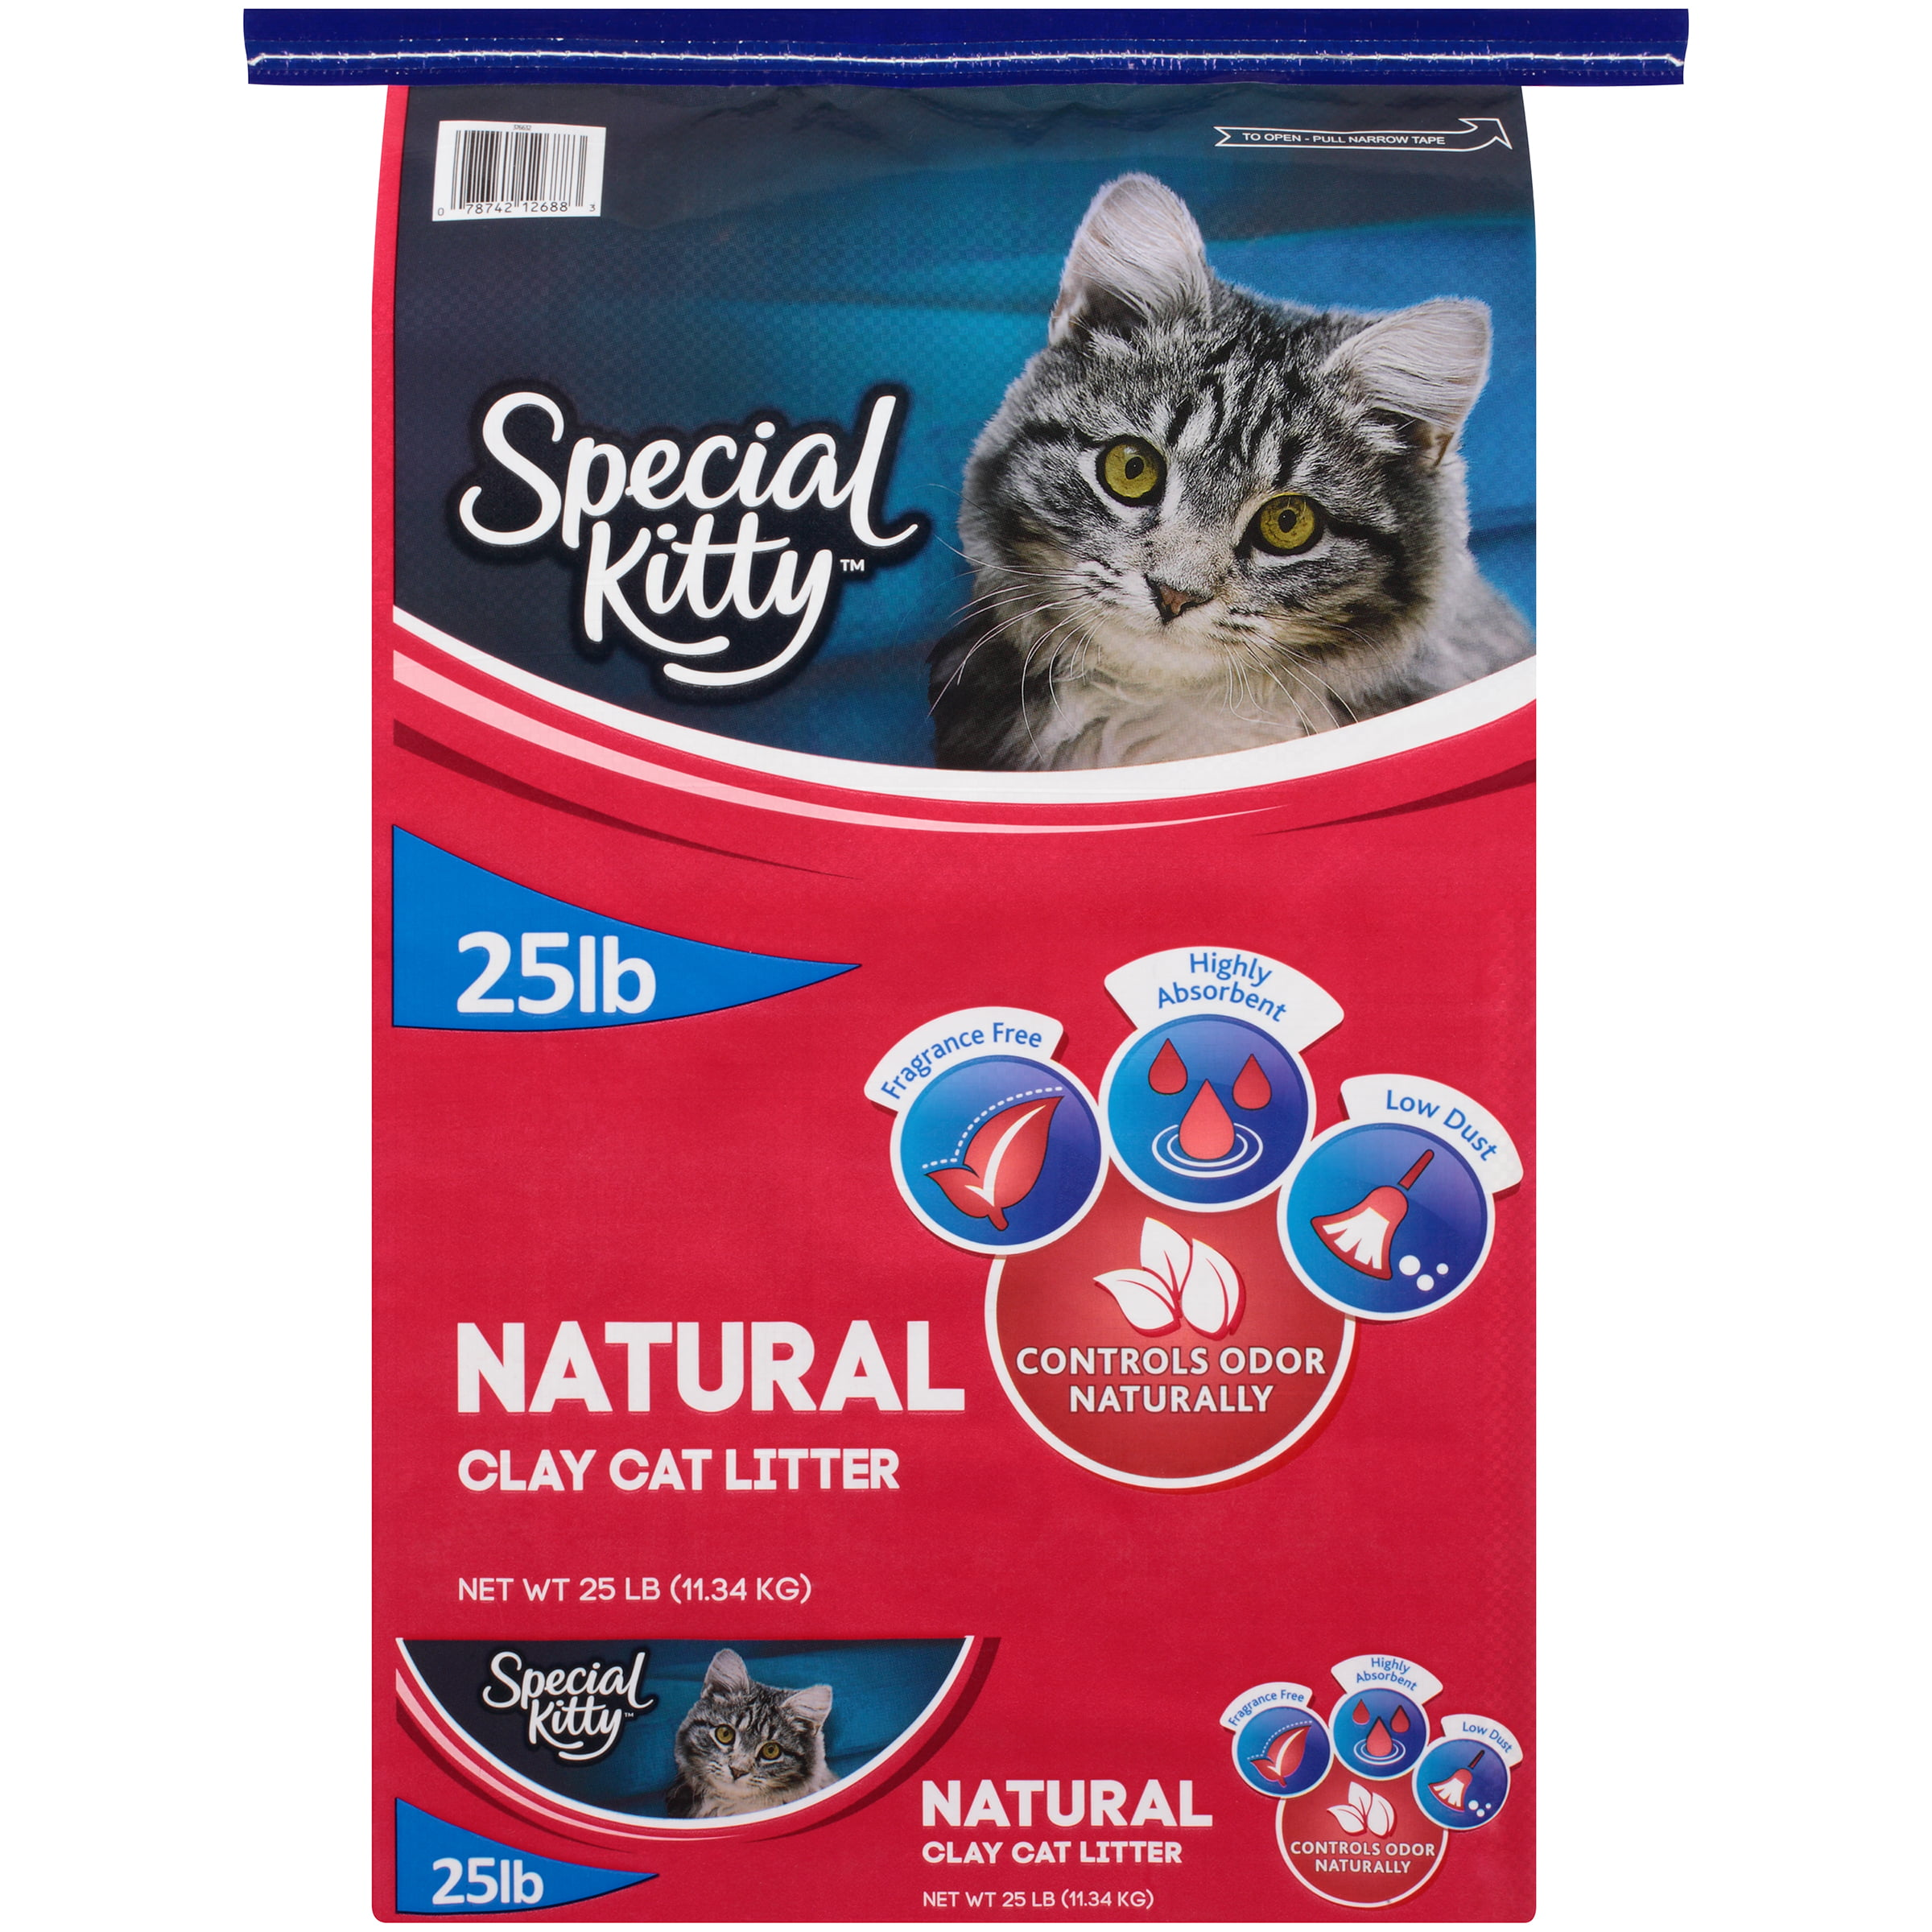 Which cat litter is better Cat litter - reviews, prices 41